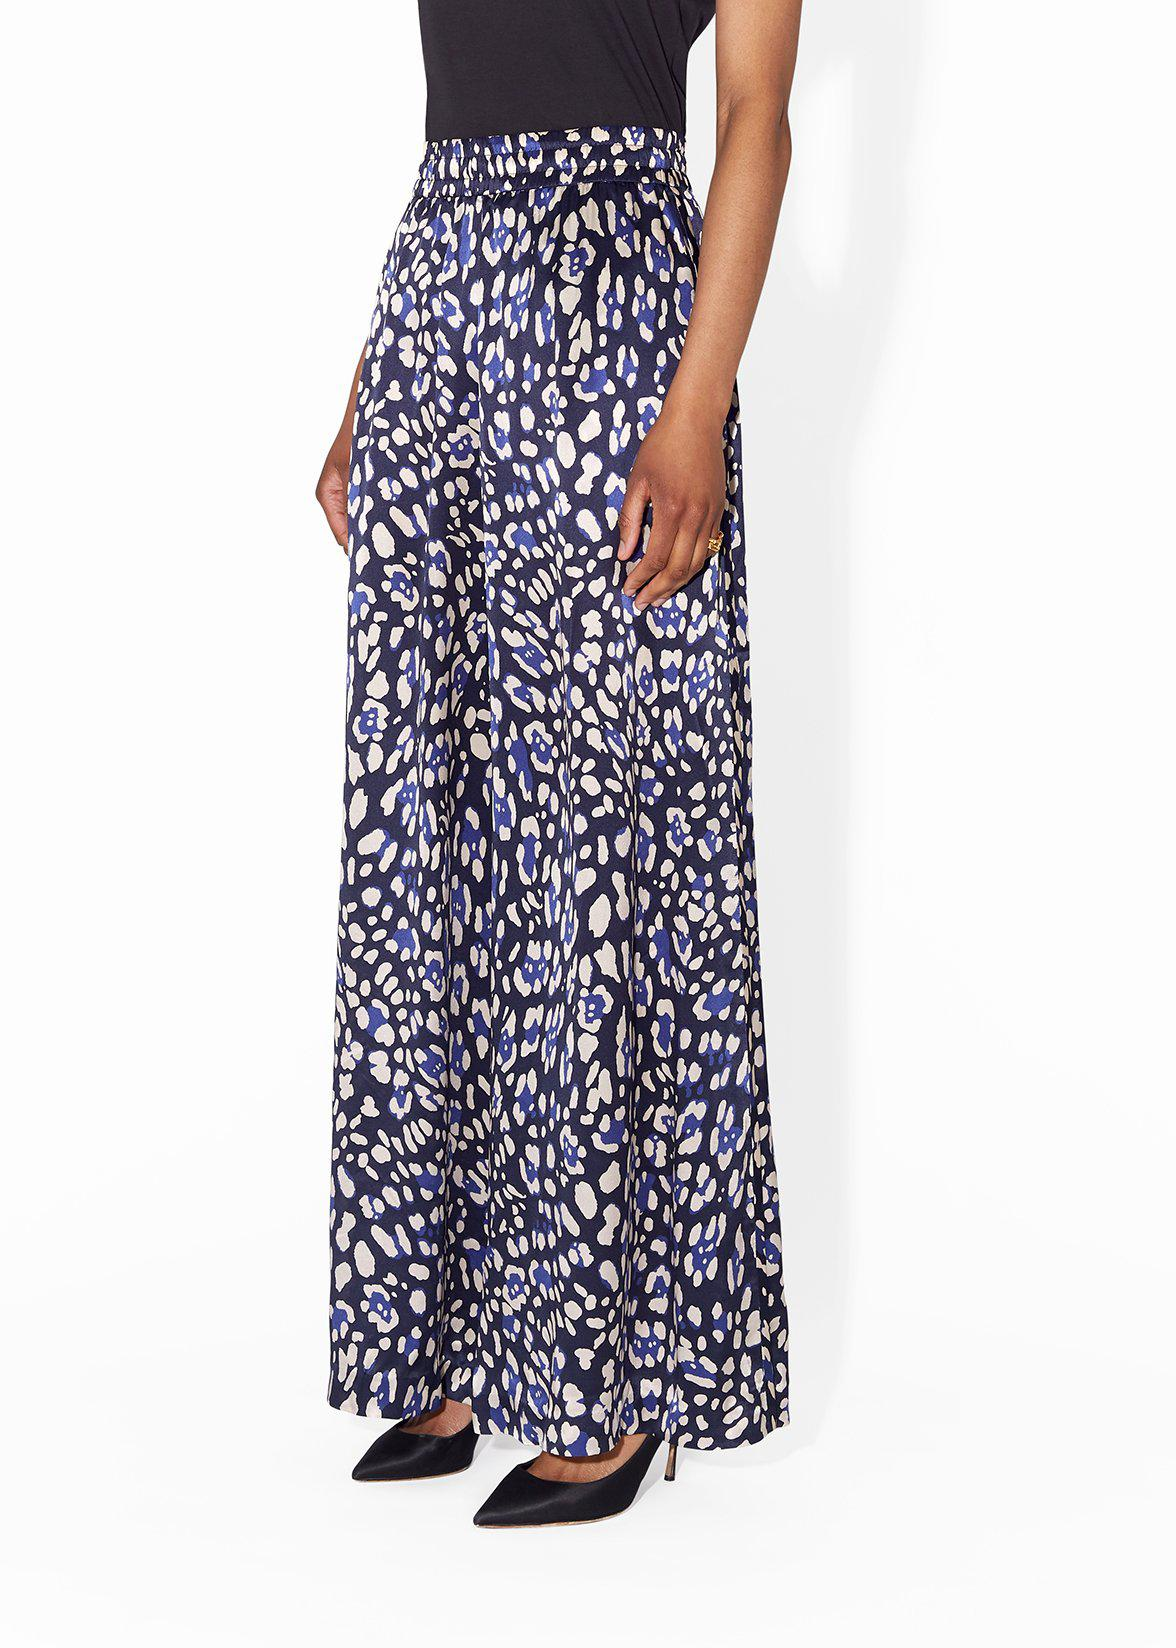 WIDE-LEG PANT IN PRINTED CHARMEUSE 2